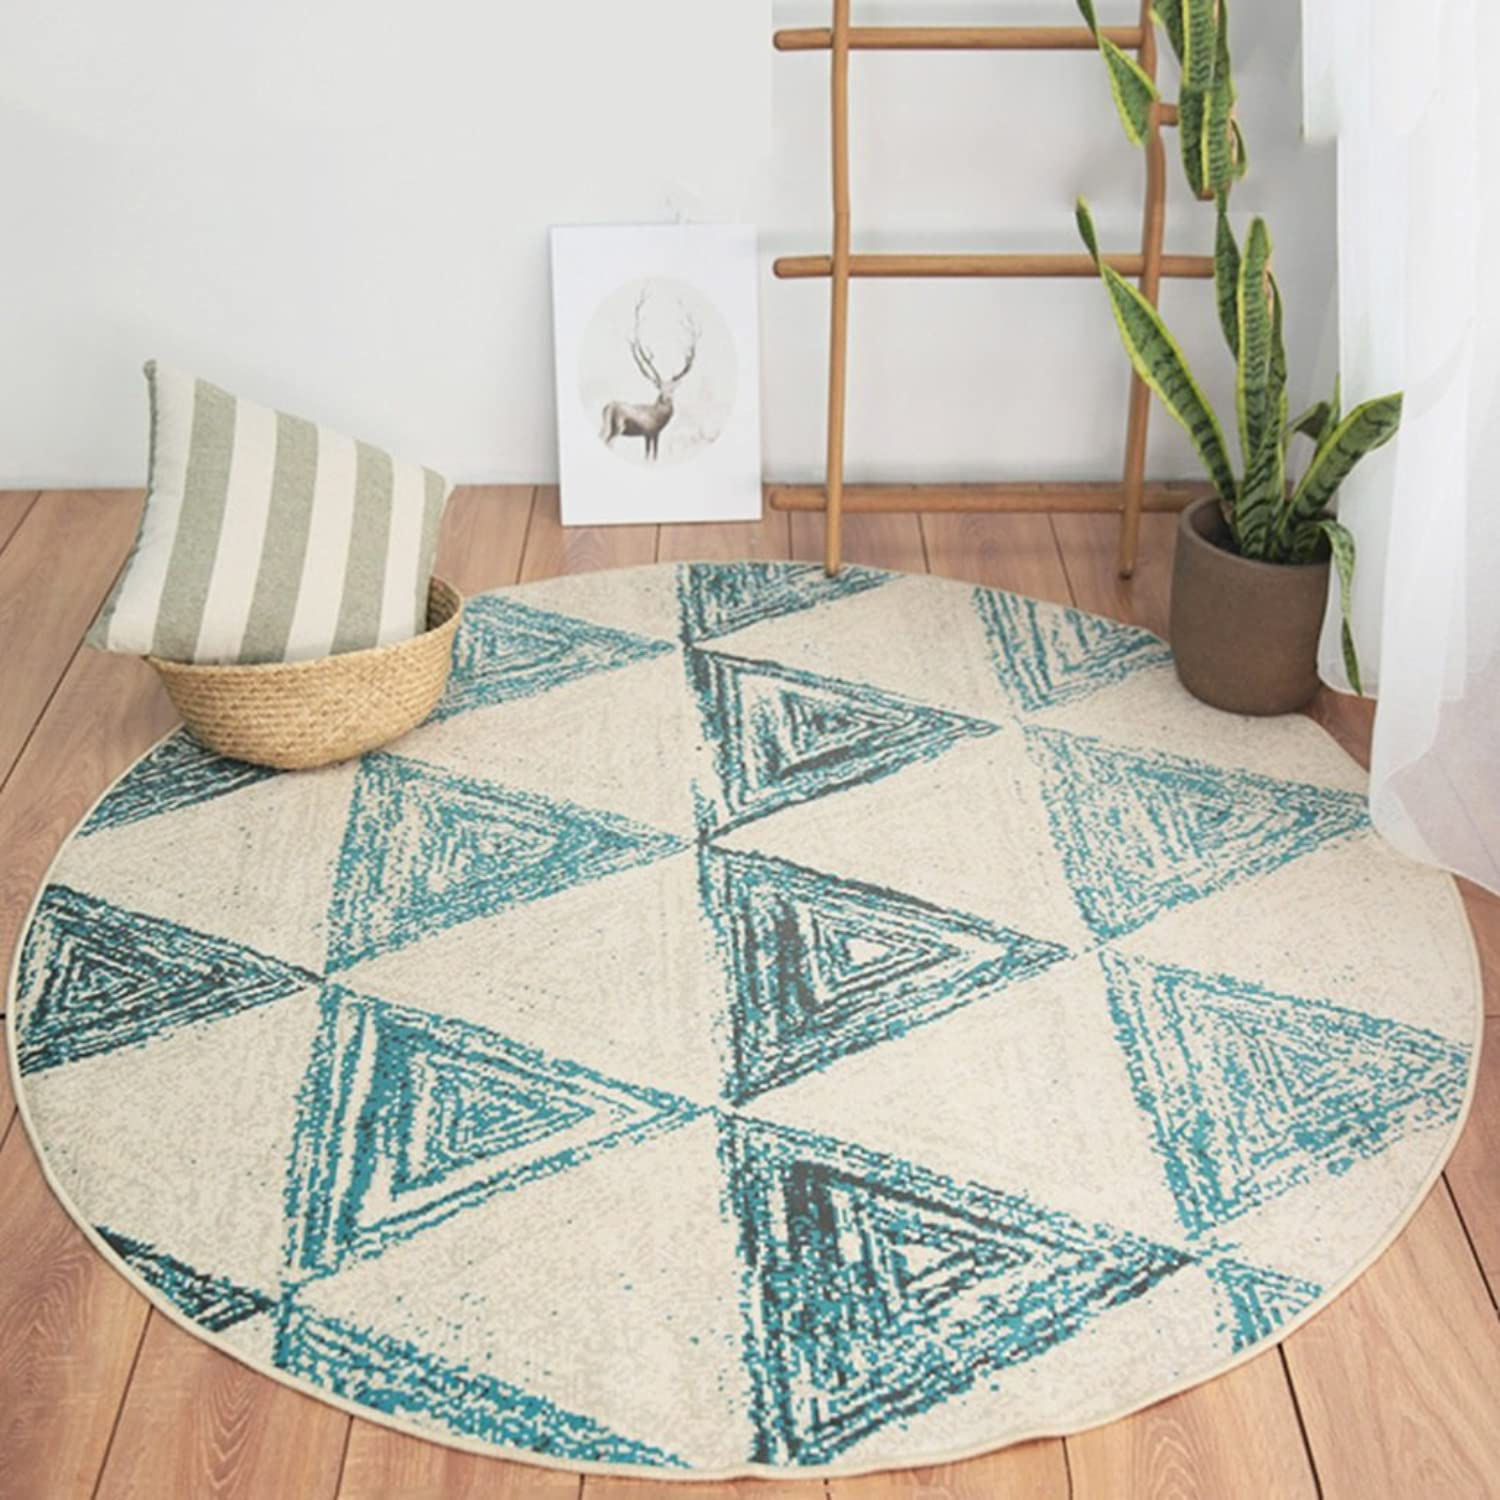 Rug Carpet Living Room Bedroom Coffee Table Sofa Room nightstand Home Rug Round Computer Chair Mat European and American Style (color   A, Size   120cm)